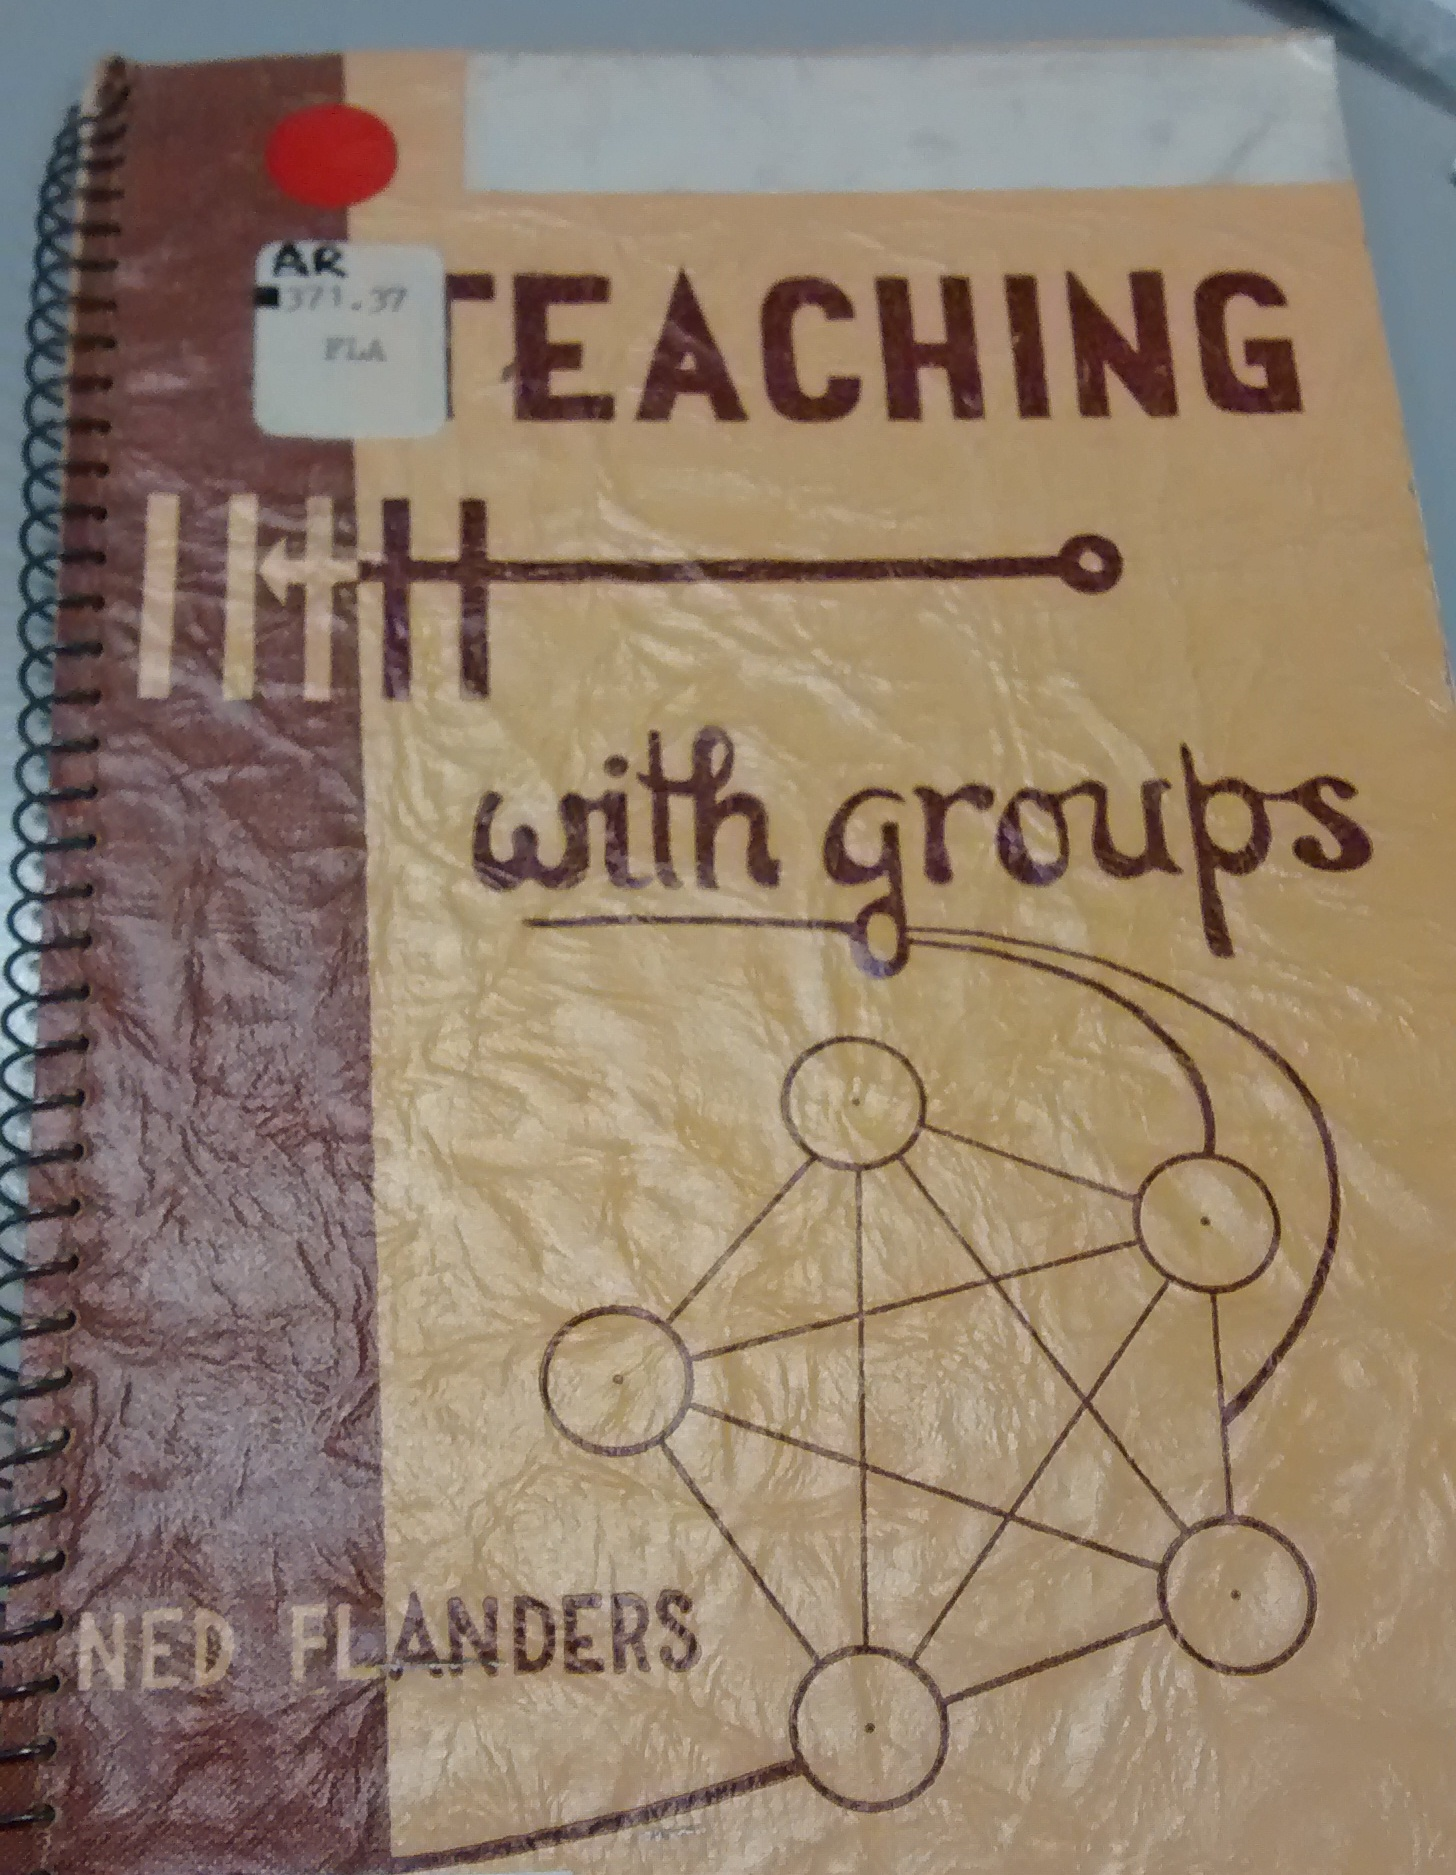 Education resource from 1954.